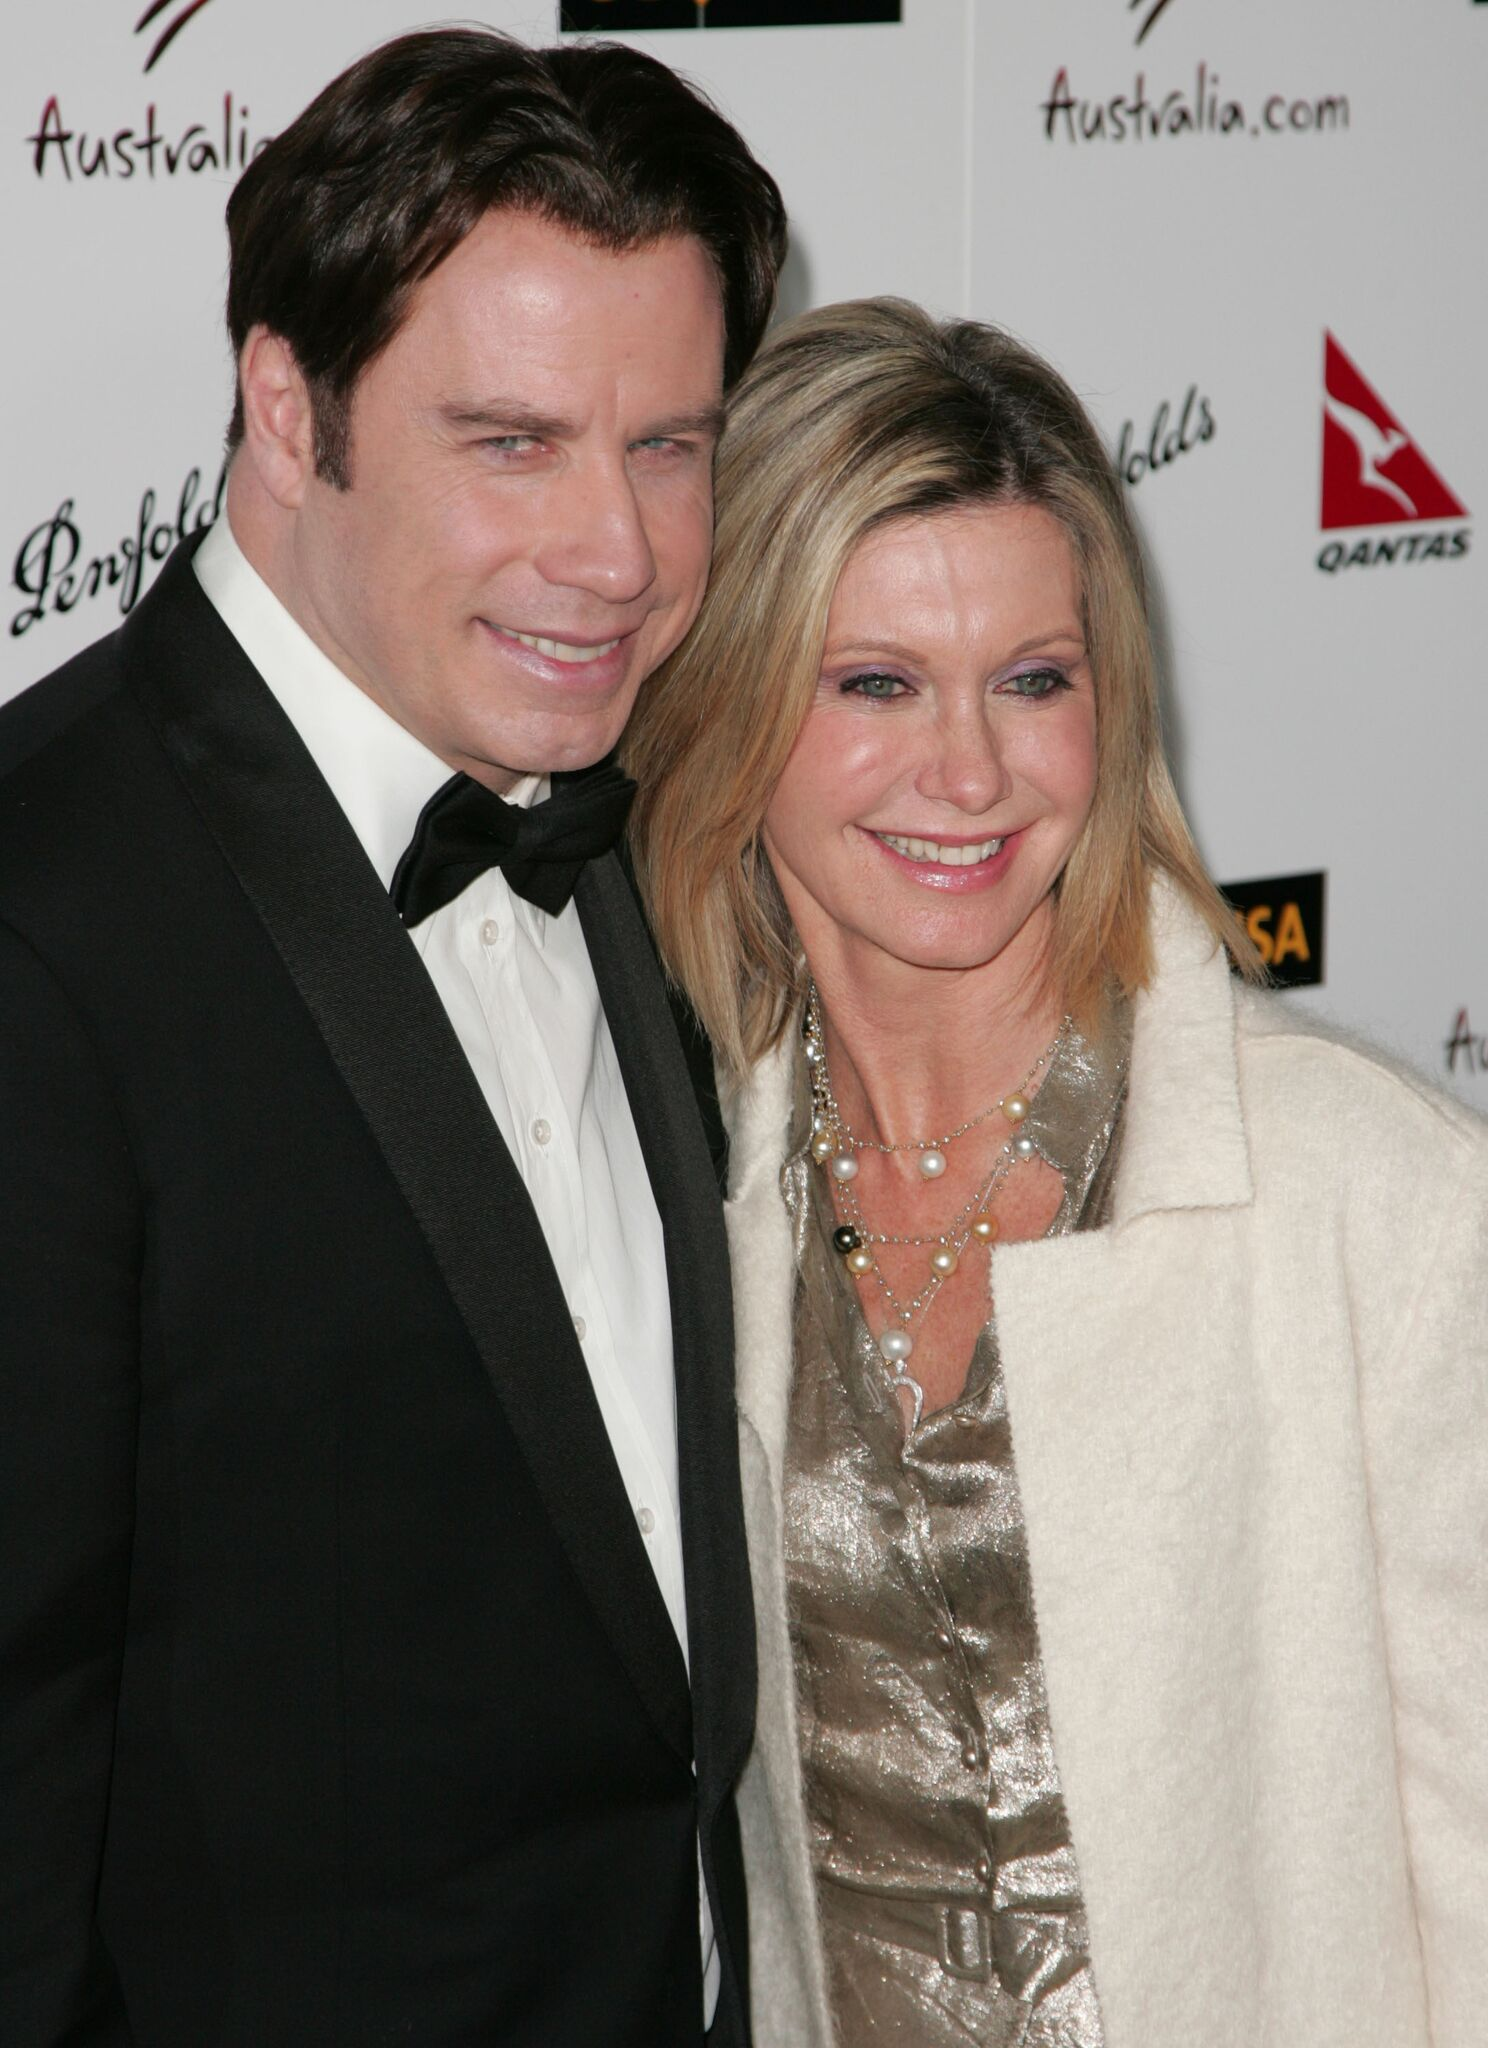 John Travolta and singer Olivia Newton-John arrive at the G'DAY USA Australia.com Black Tie Gala held at the Hollywood and Highland Grand Ballroom  | Getty Images